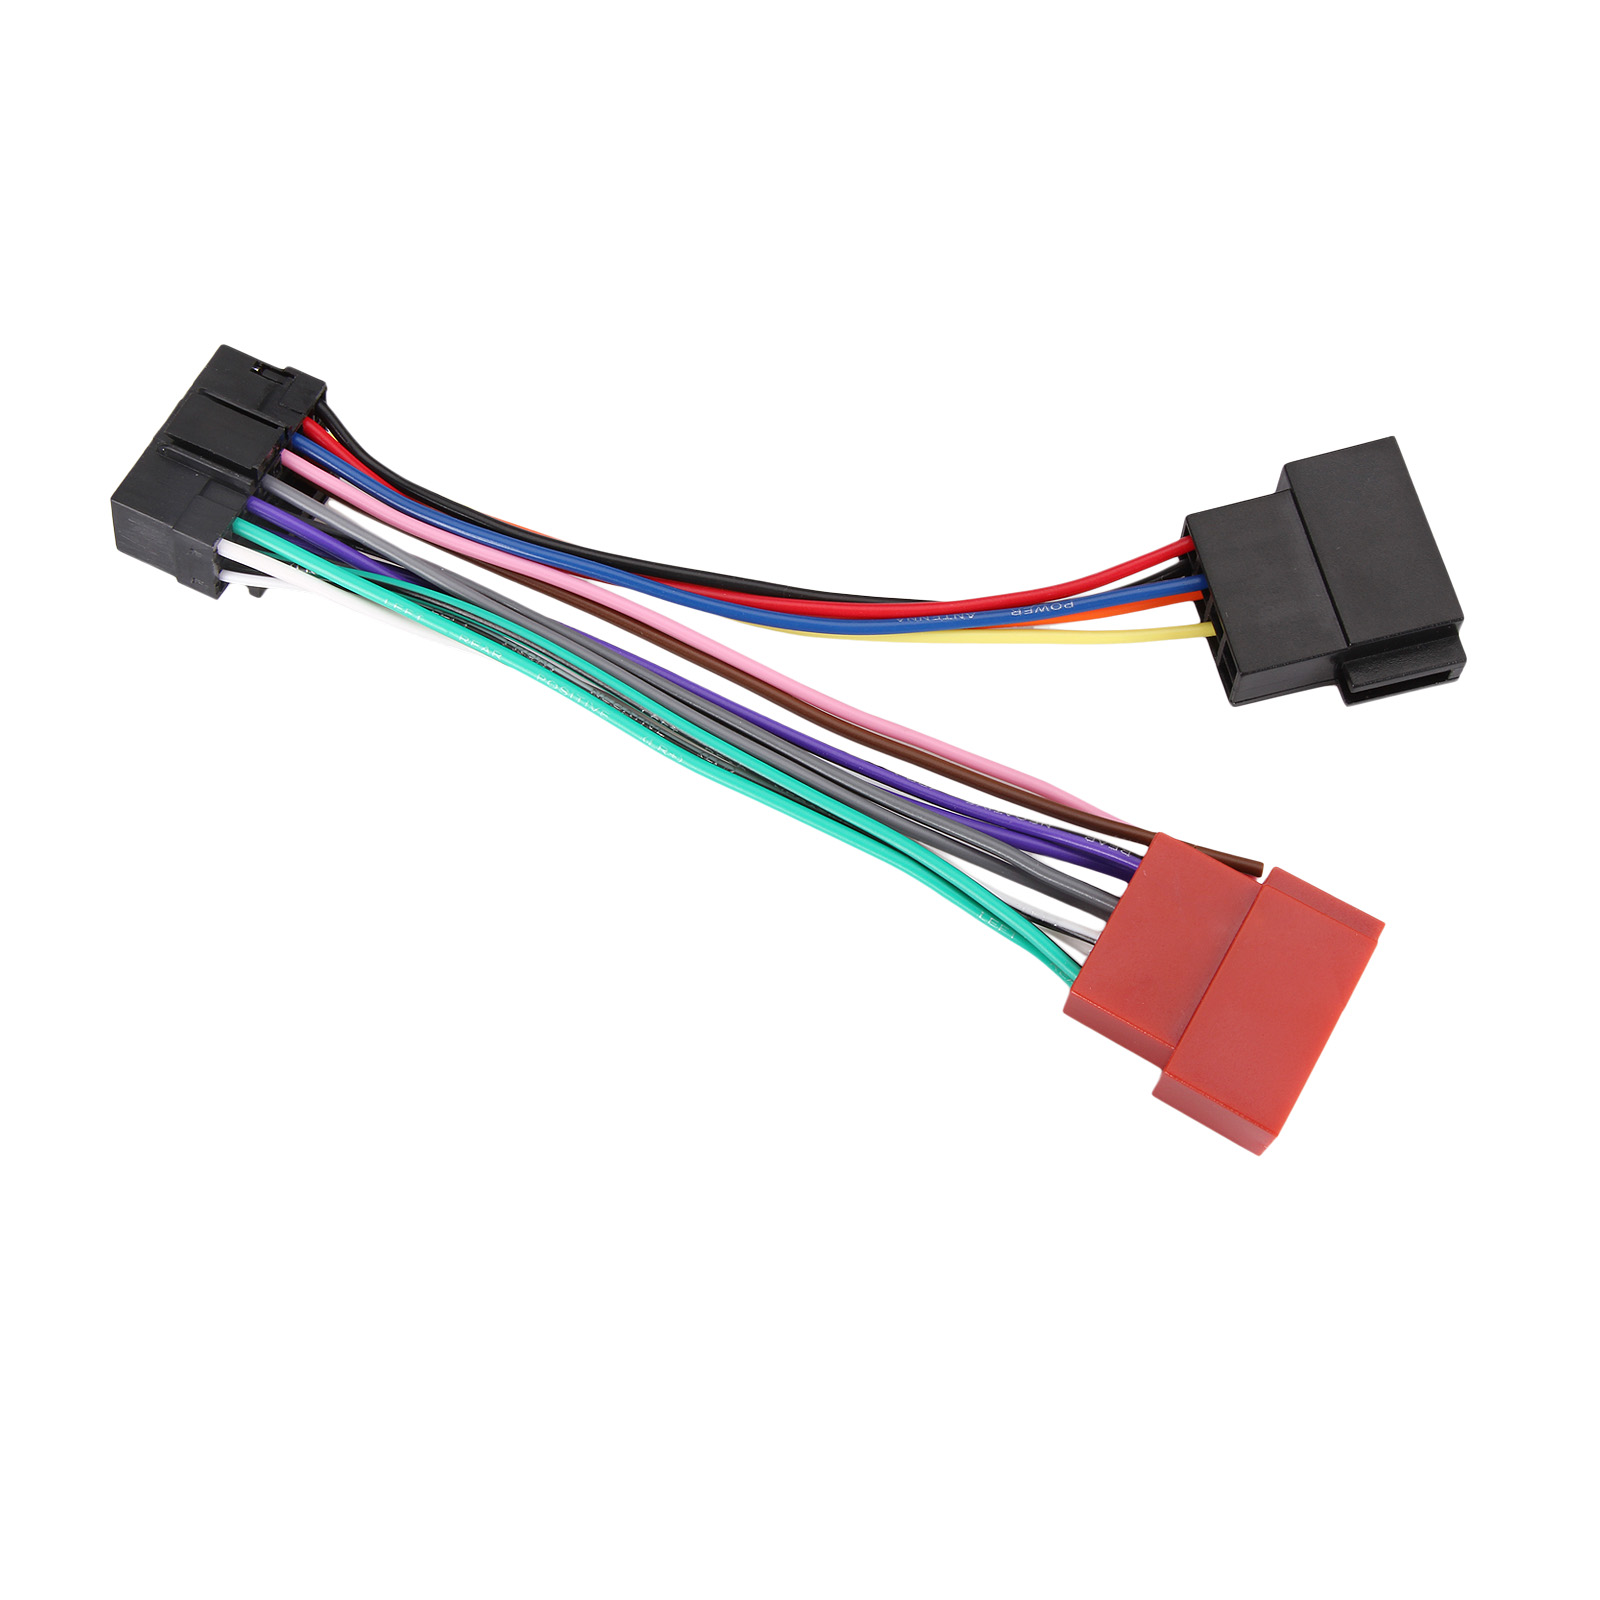 Sony Car Stereo Wiring Harness Adapter Solutions For Radios On Xplod 16 Pin Iso Radio Connector Adaptor Cable Loom